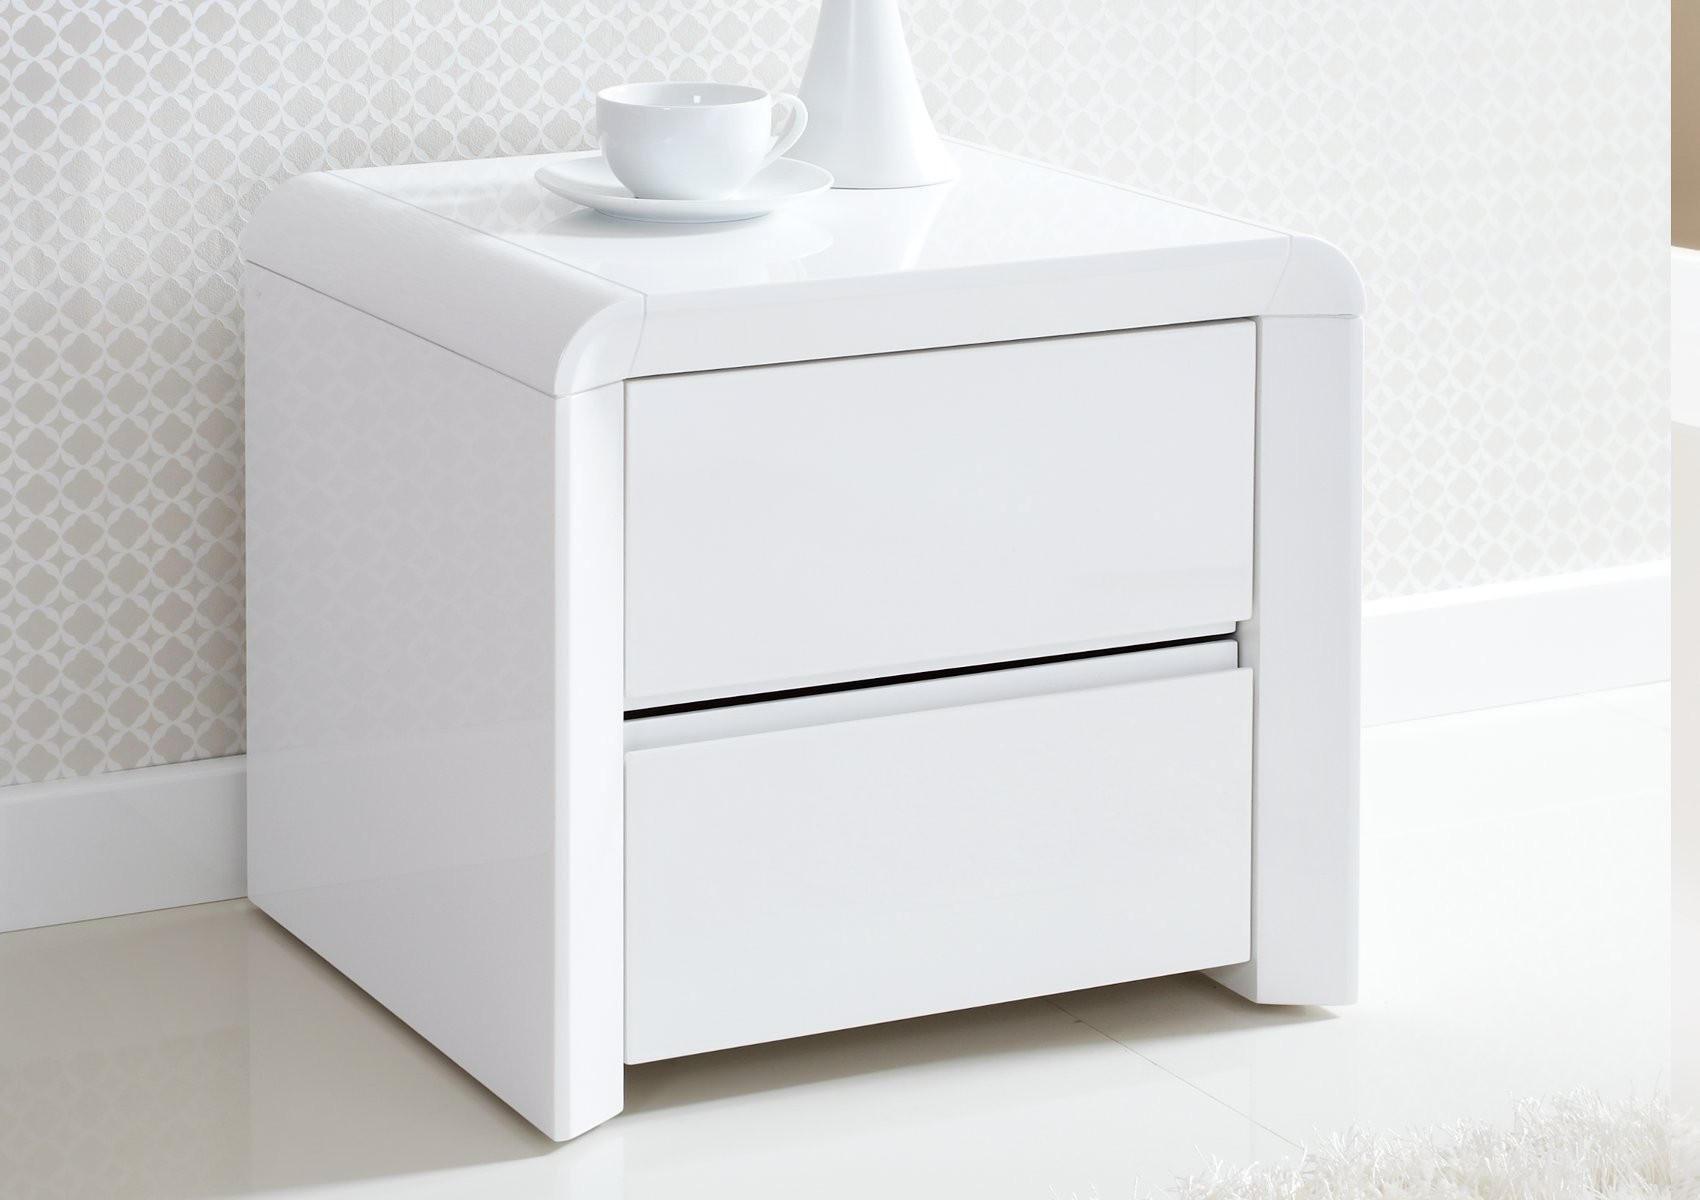 delightful white gloss drawer bedside table oak small farmers walnut grey narrow deco marble diy argos ideas round beds tables high for deutsch kmart room childrens ubersetzung